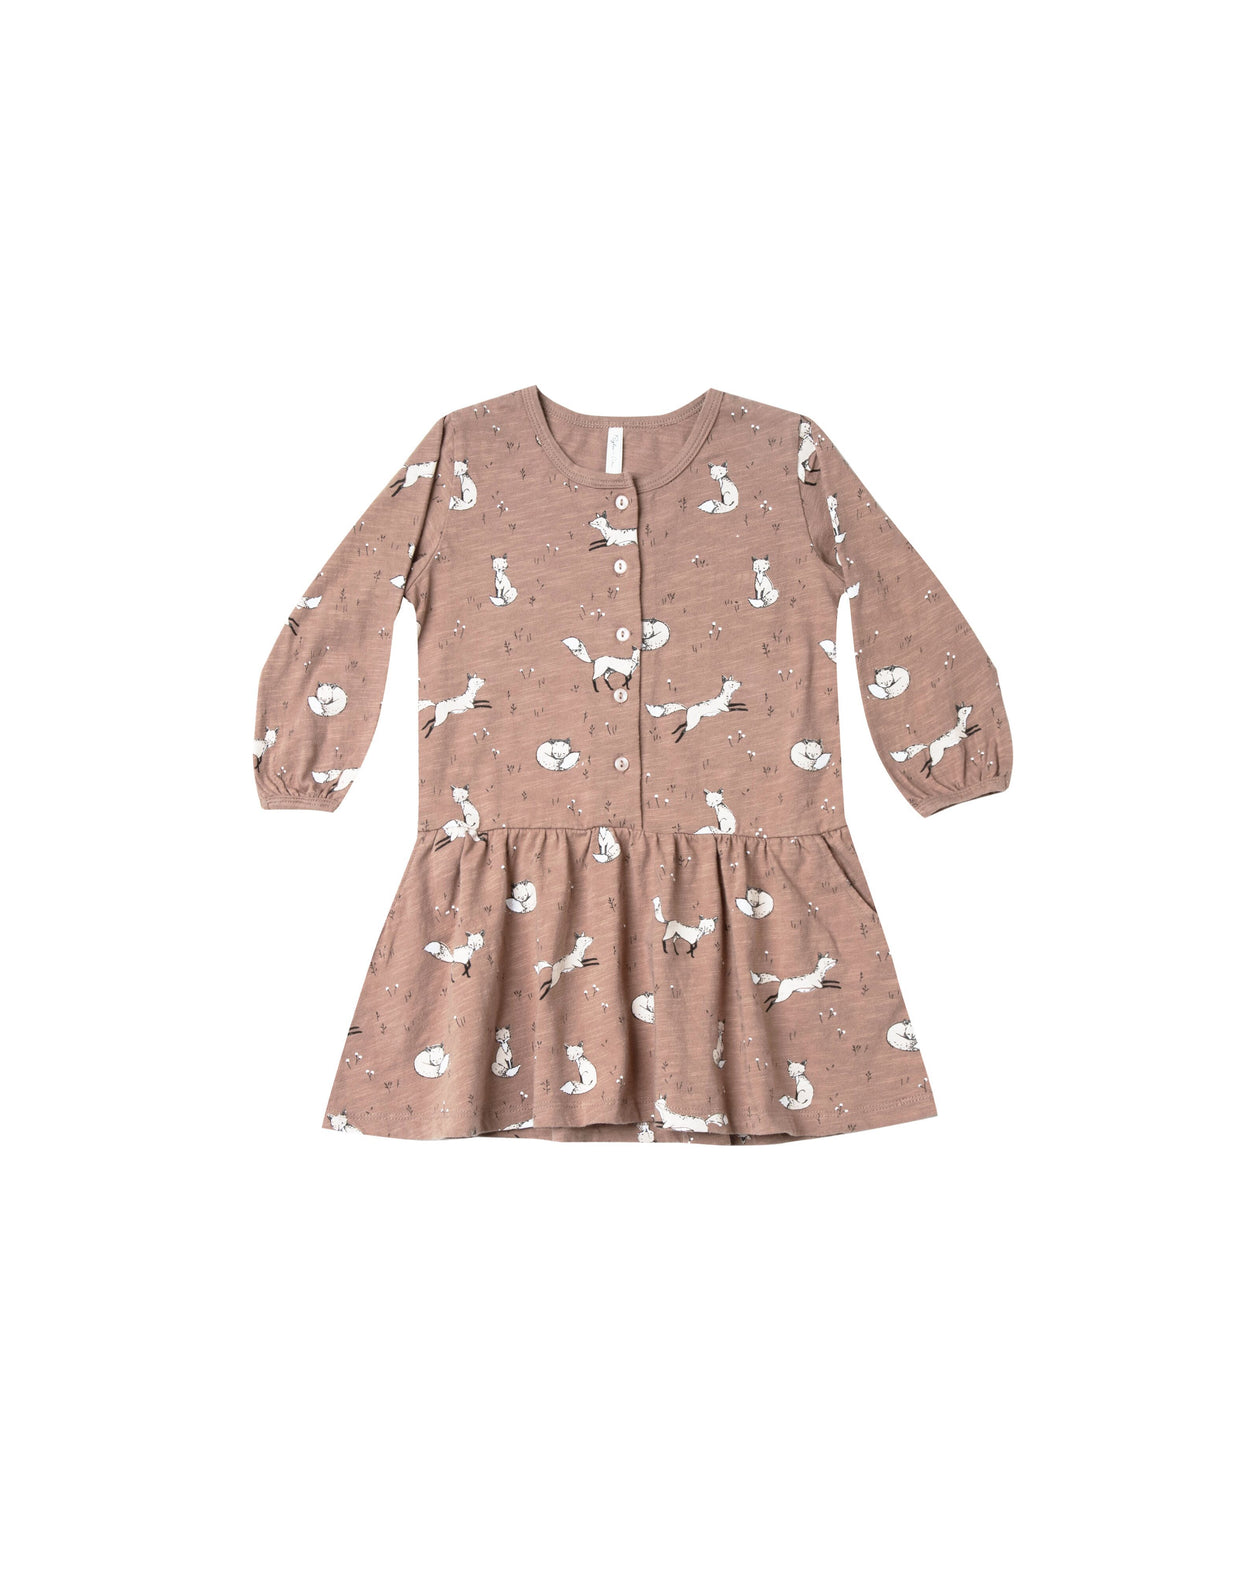 Winter Fox Button Up Dress by Rylee & Cru